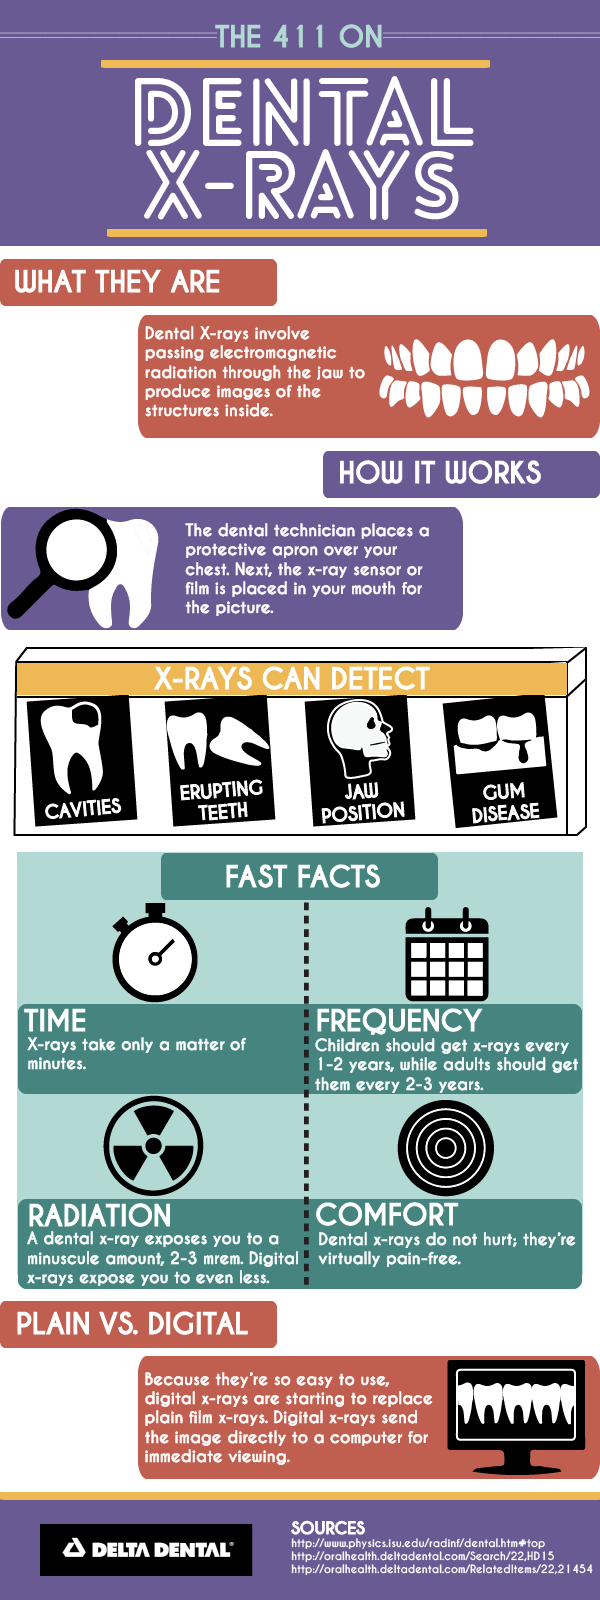 X-Ray-Day-Infographic-01